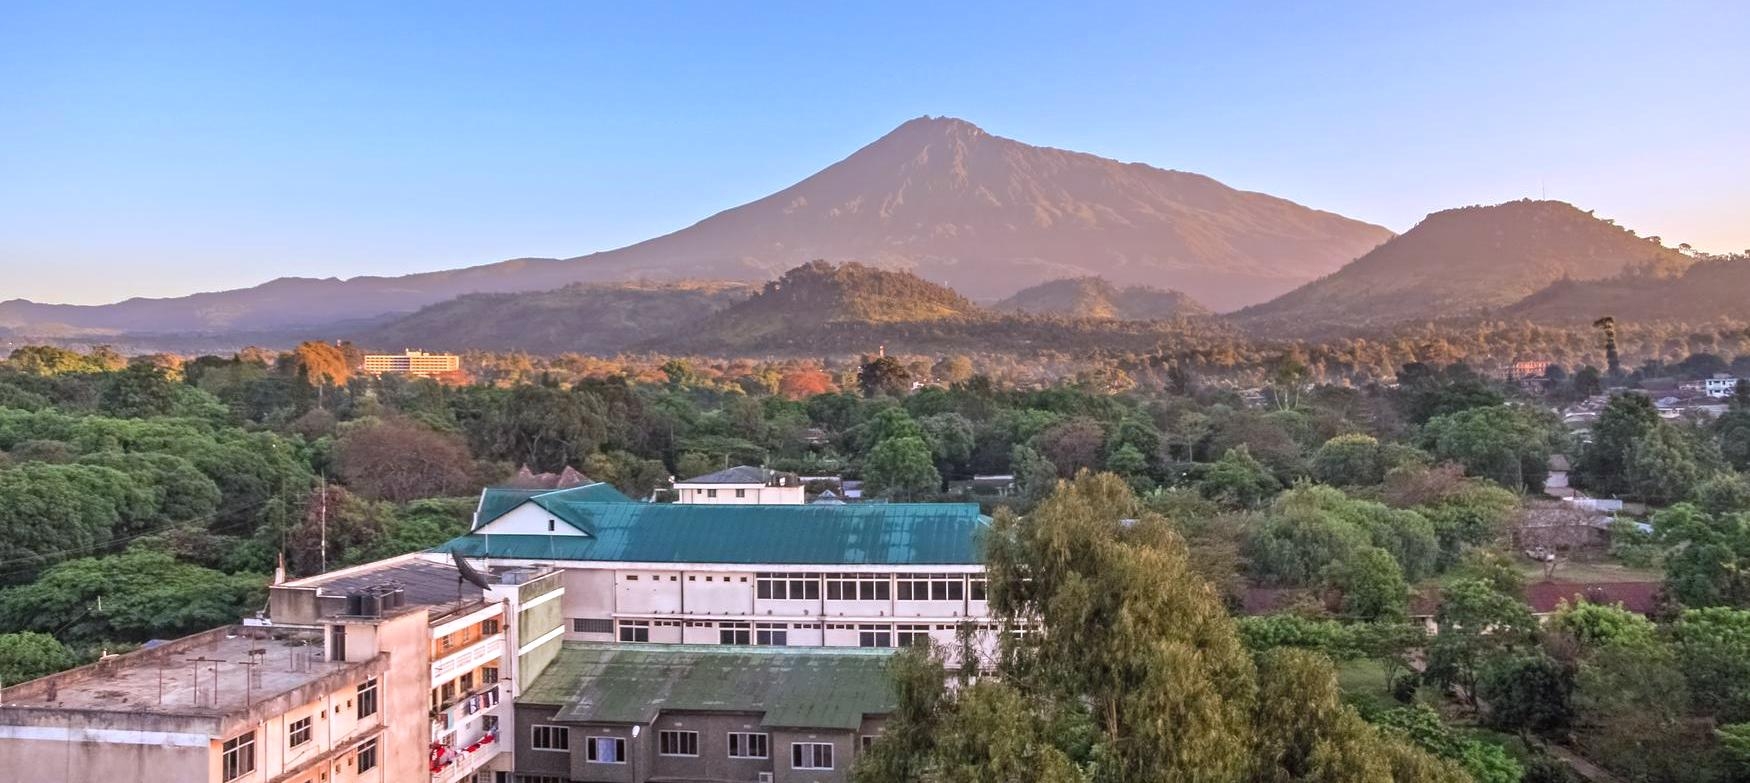 Top 15 Things to do in Arusha City